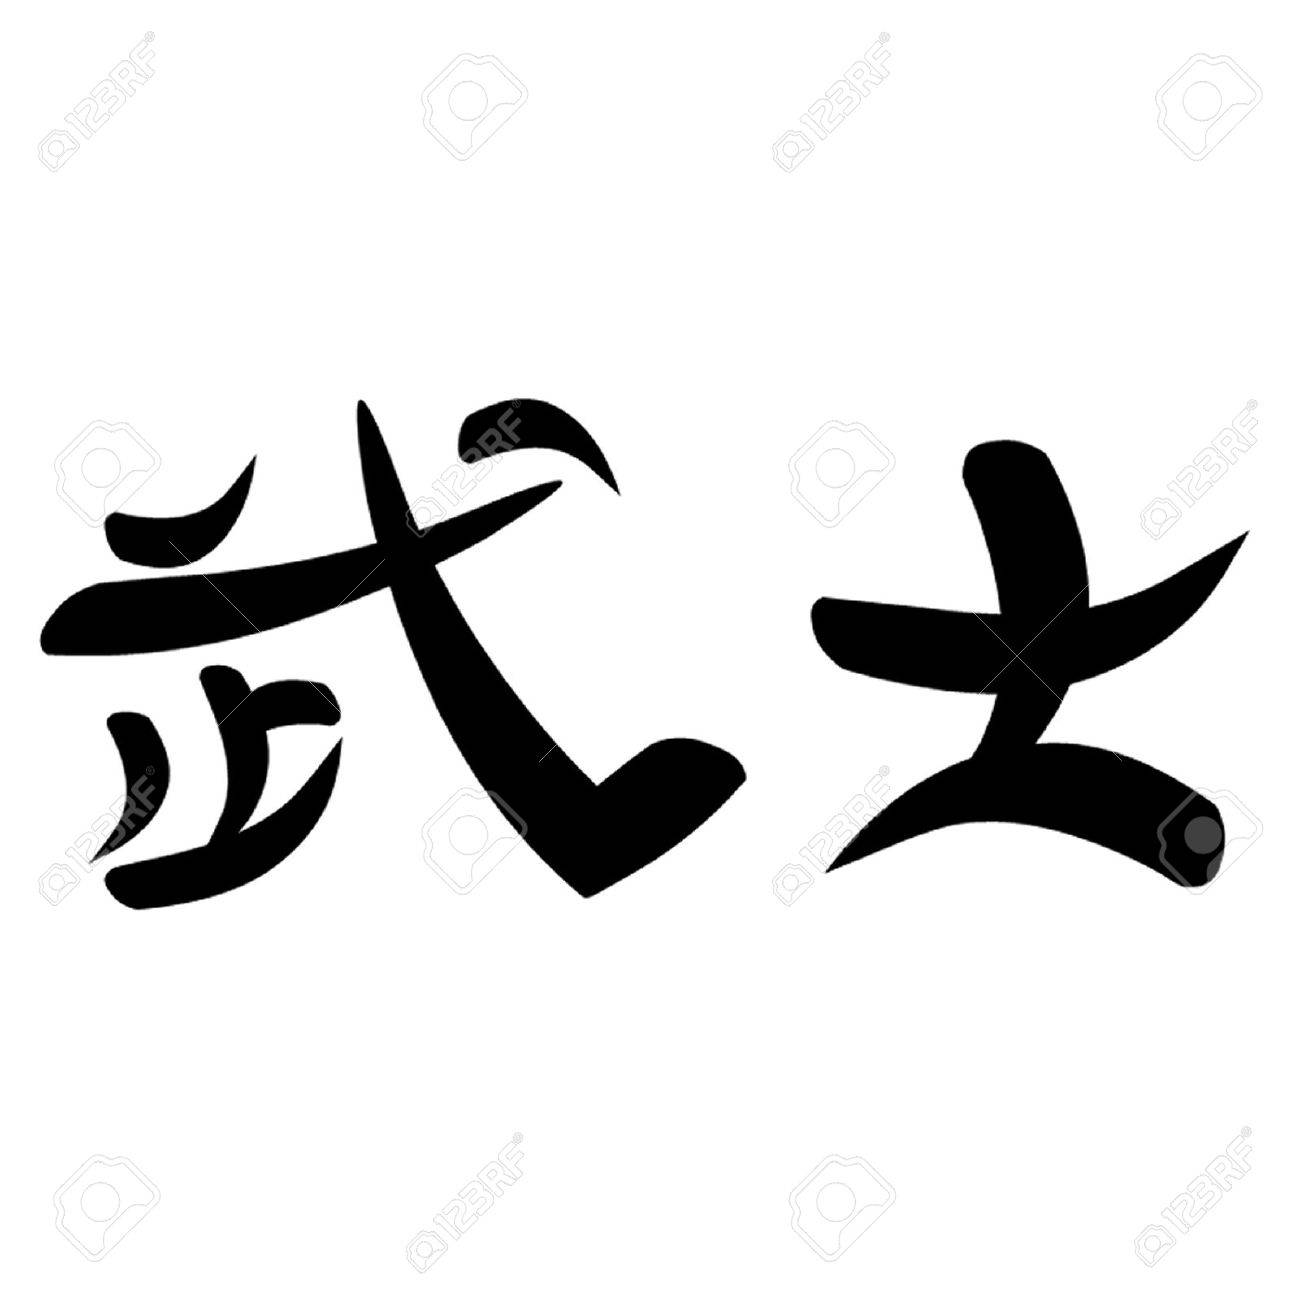 Kanji for warrior royalty free cliparts vectors and stock kanji for warrior stock vector 38748229 biocorpaavc Gallery